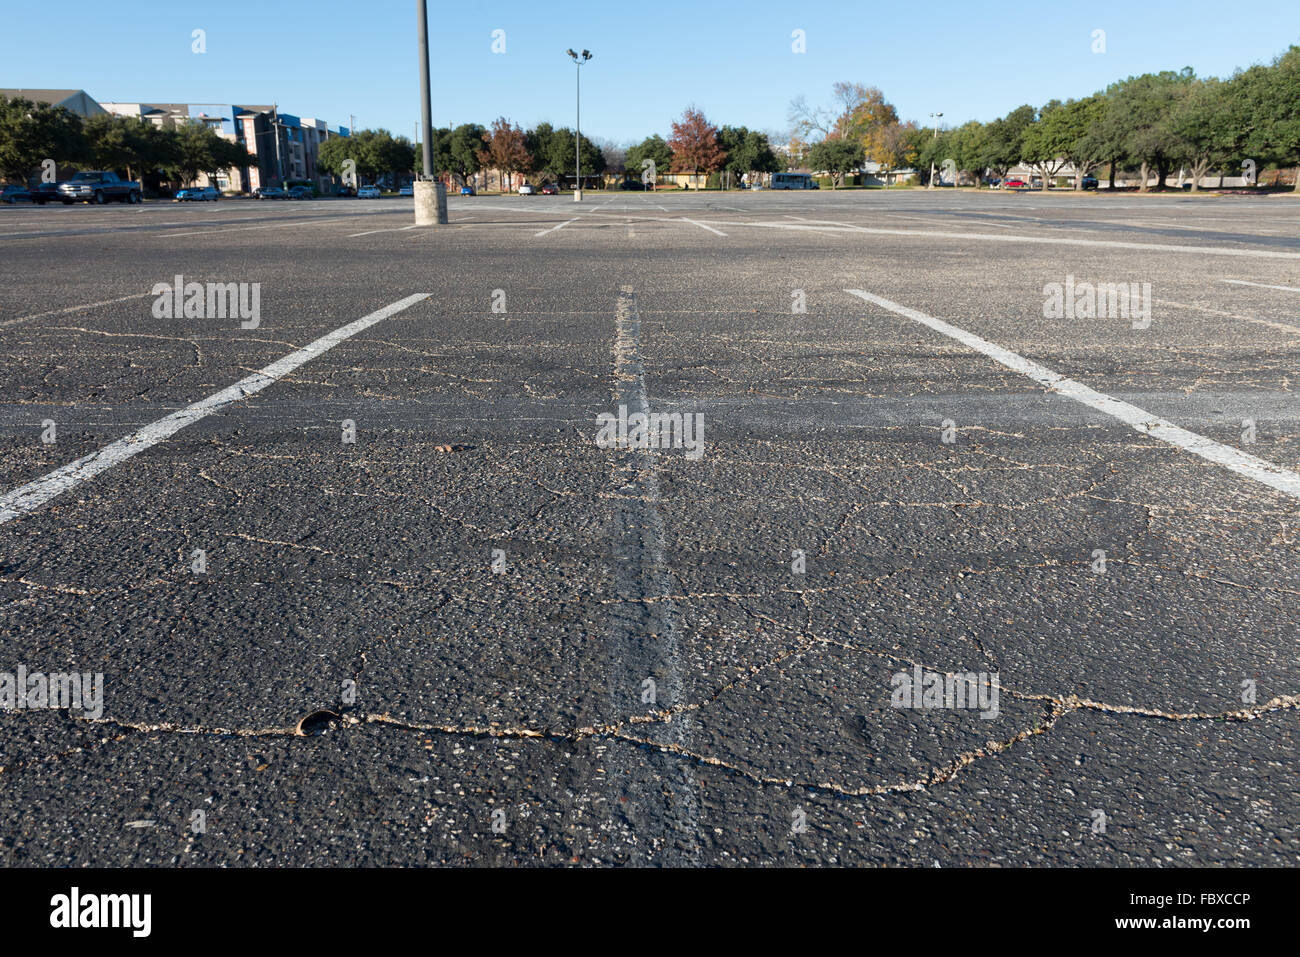 car parking lot, empty available space - Stock Image